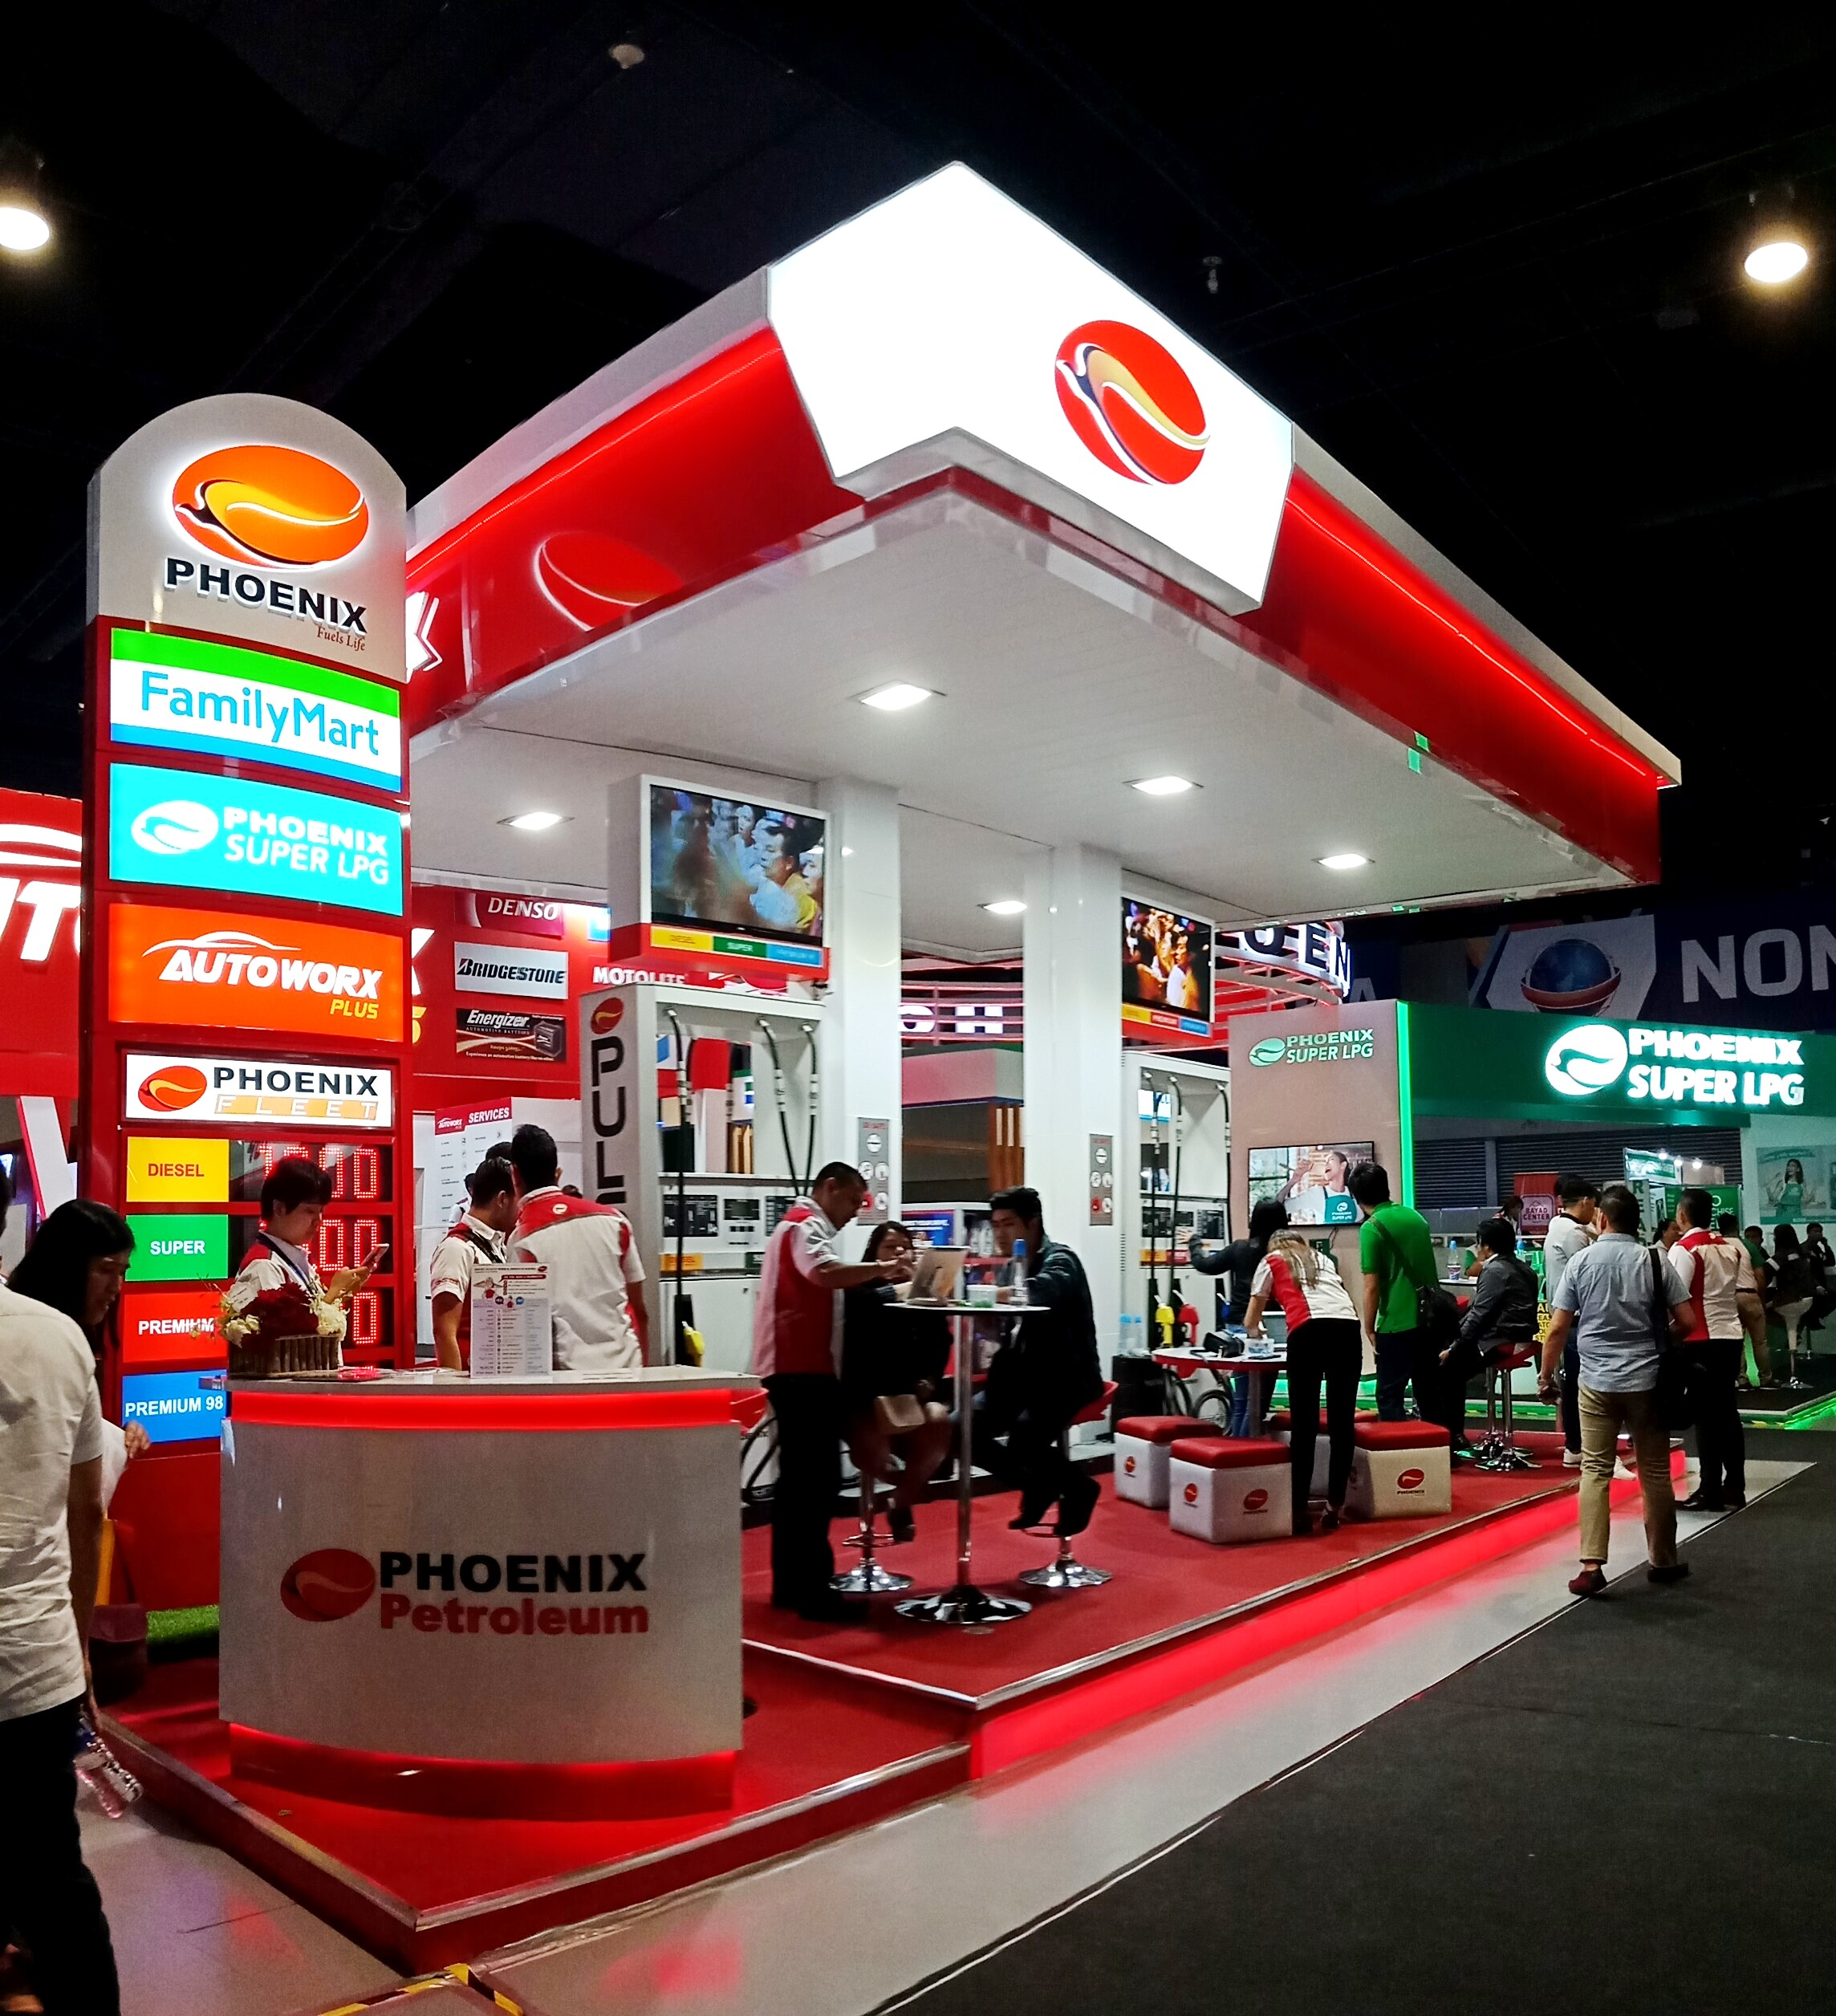 Phoenix Petroleum booth at Franchise Asia Philippines 2019